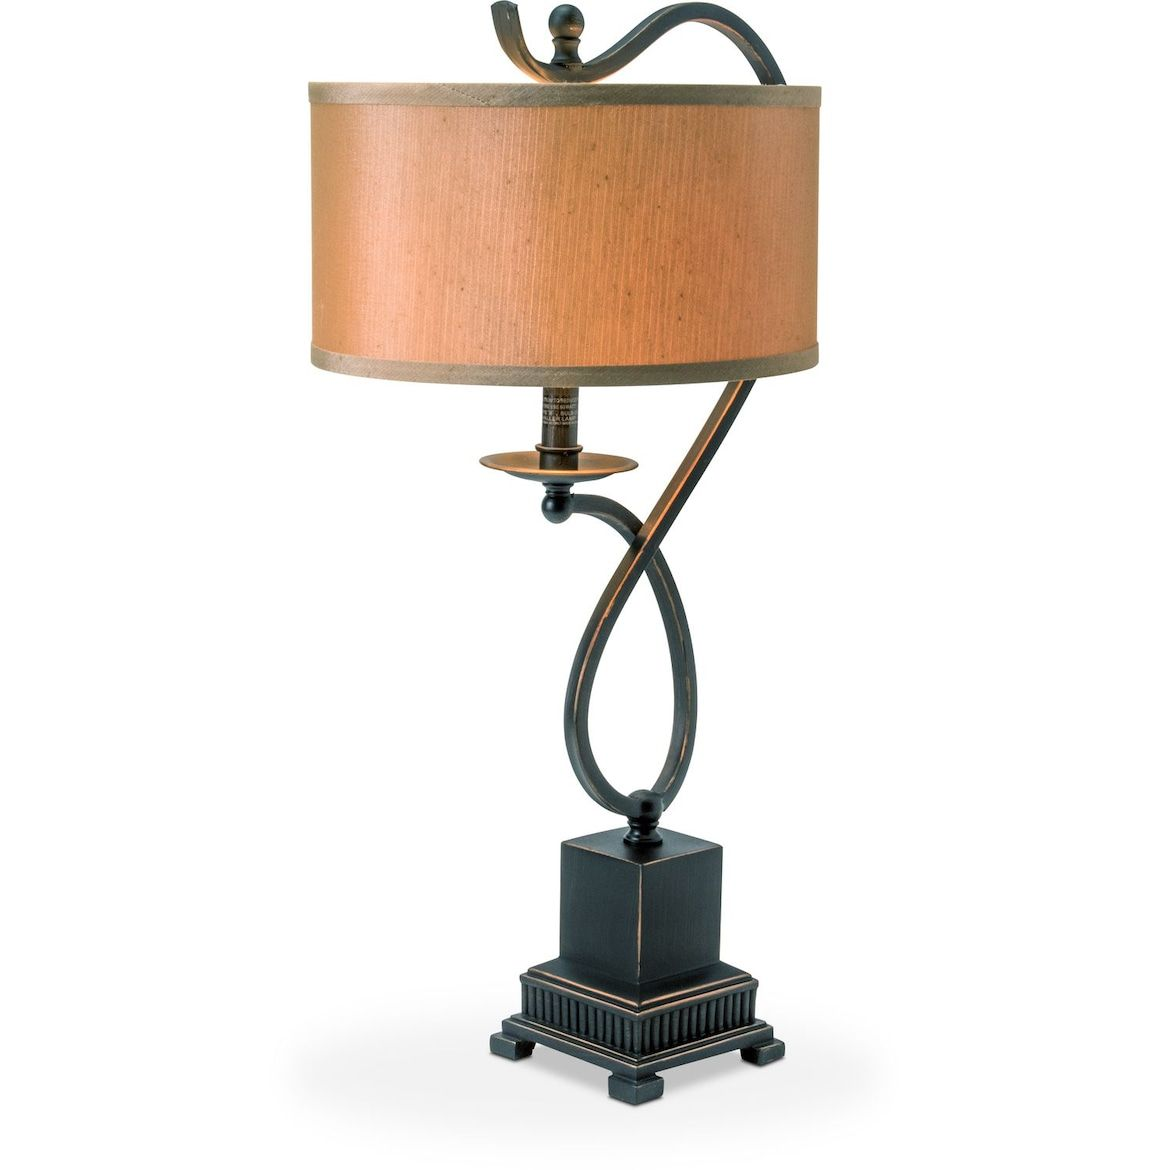 Curved Bronze Table Lamp Value City Furniture And Mattresses Bronze Table Lamp Bronze Table Value City Furniture